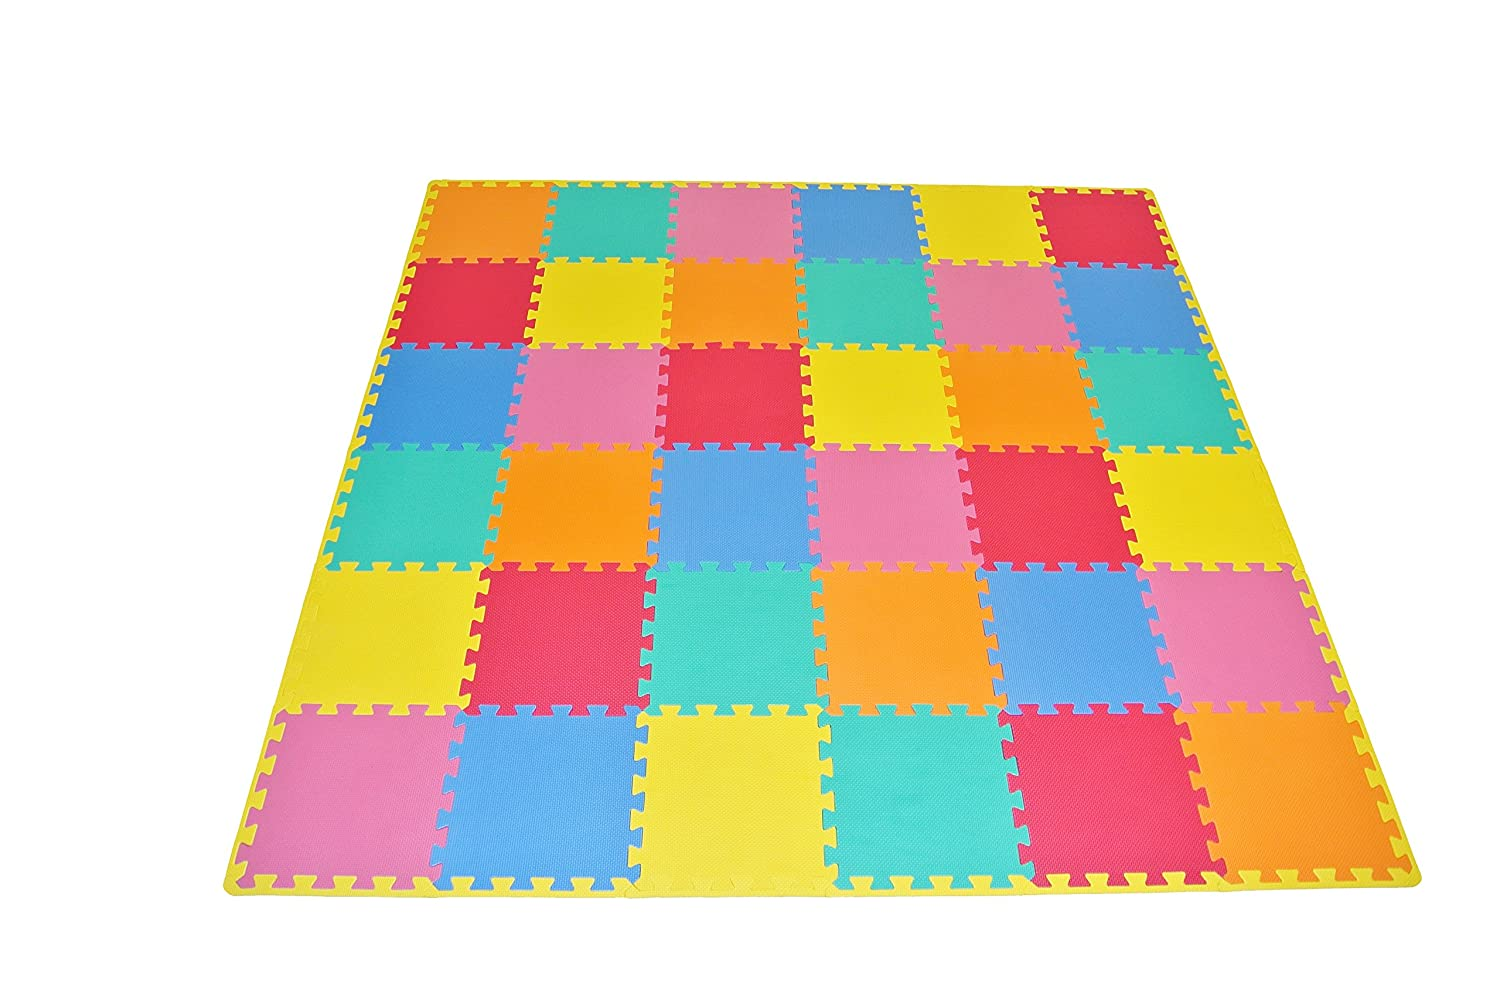 amazoncom prosource kid's puzzle solid play mat sports  outdoors -